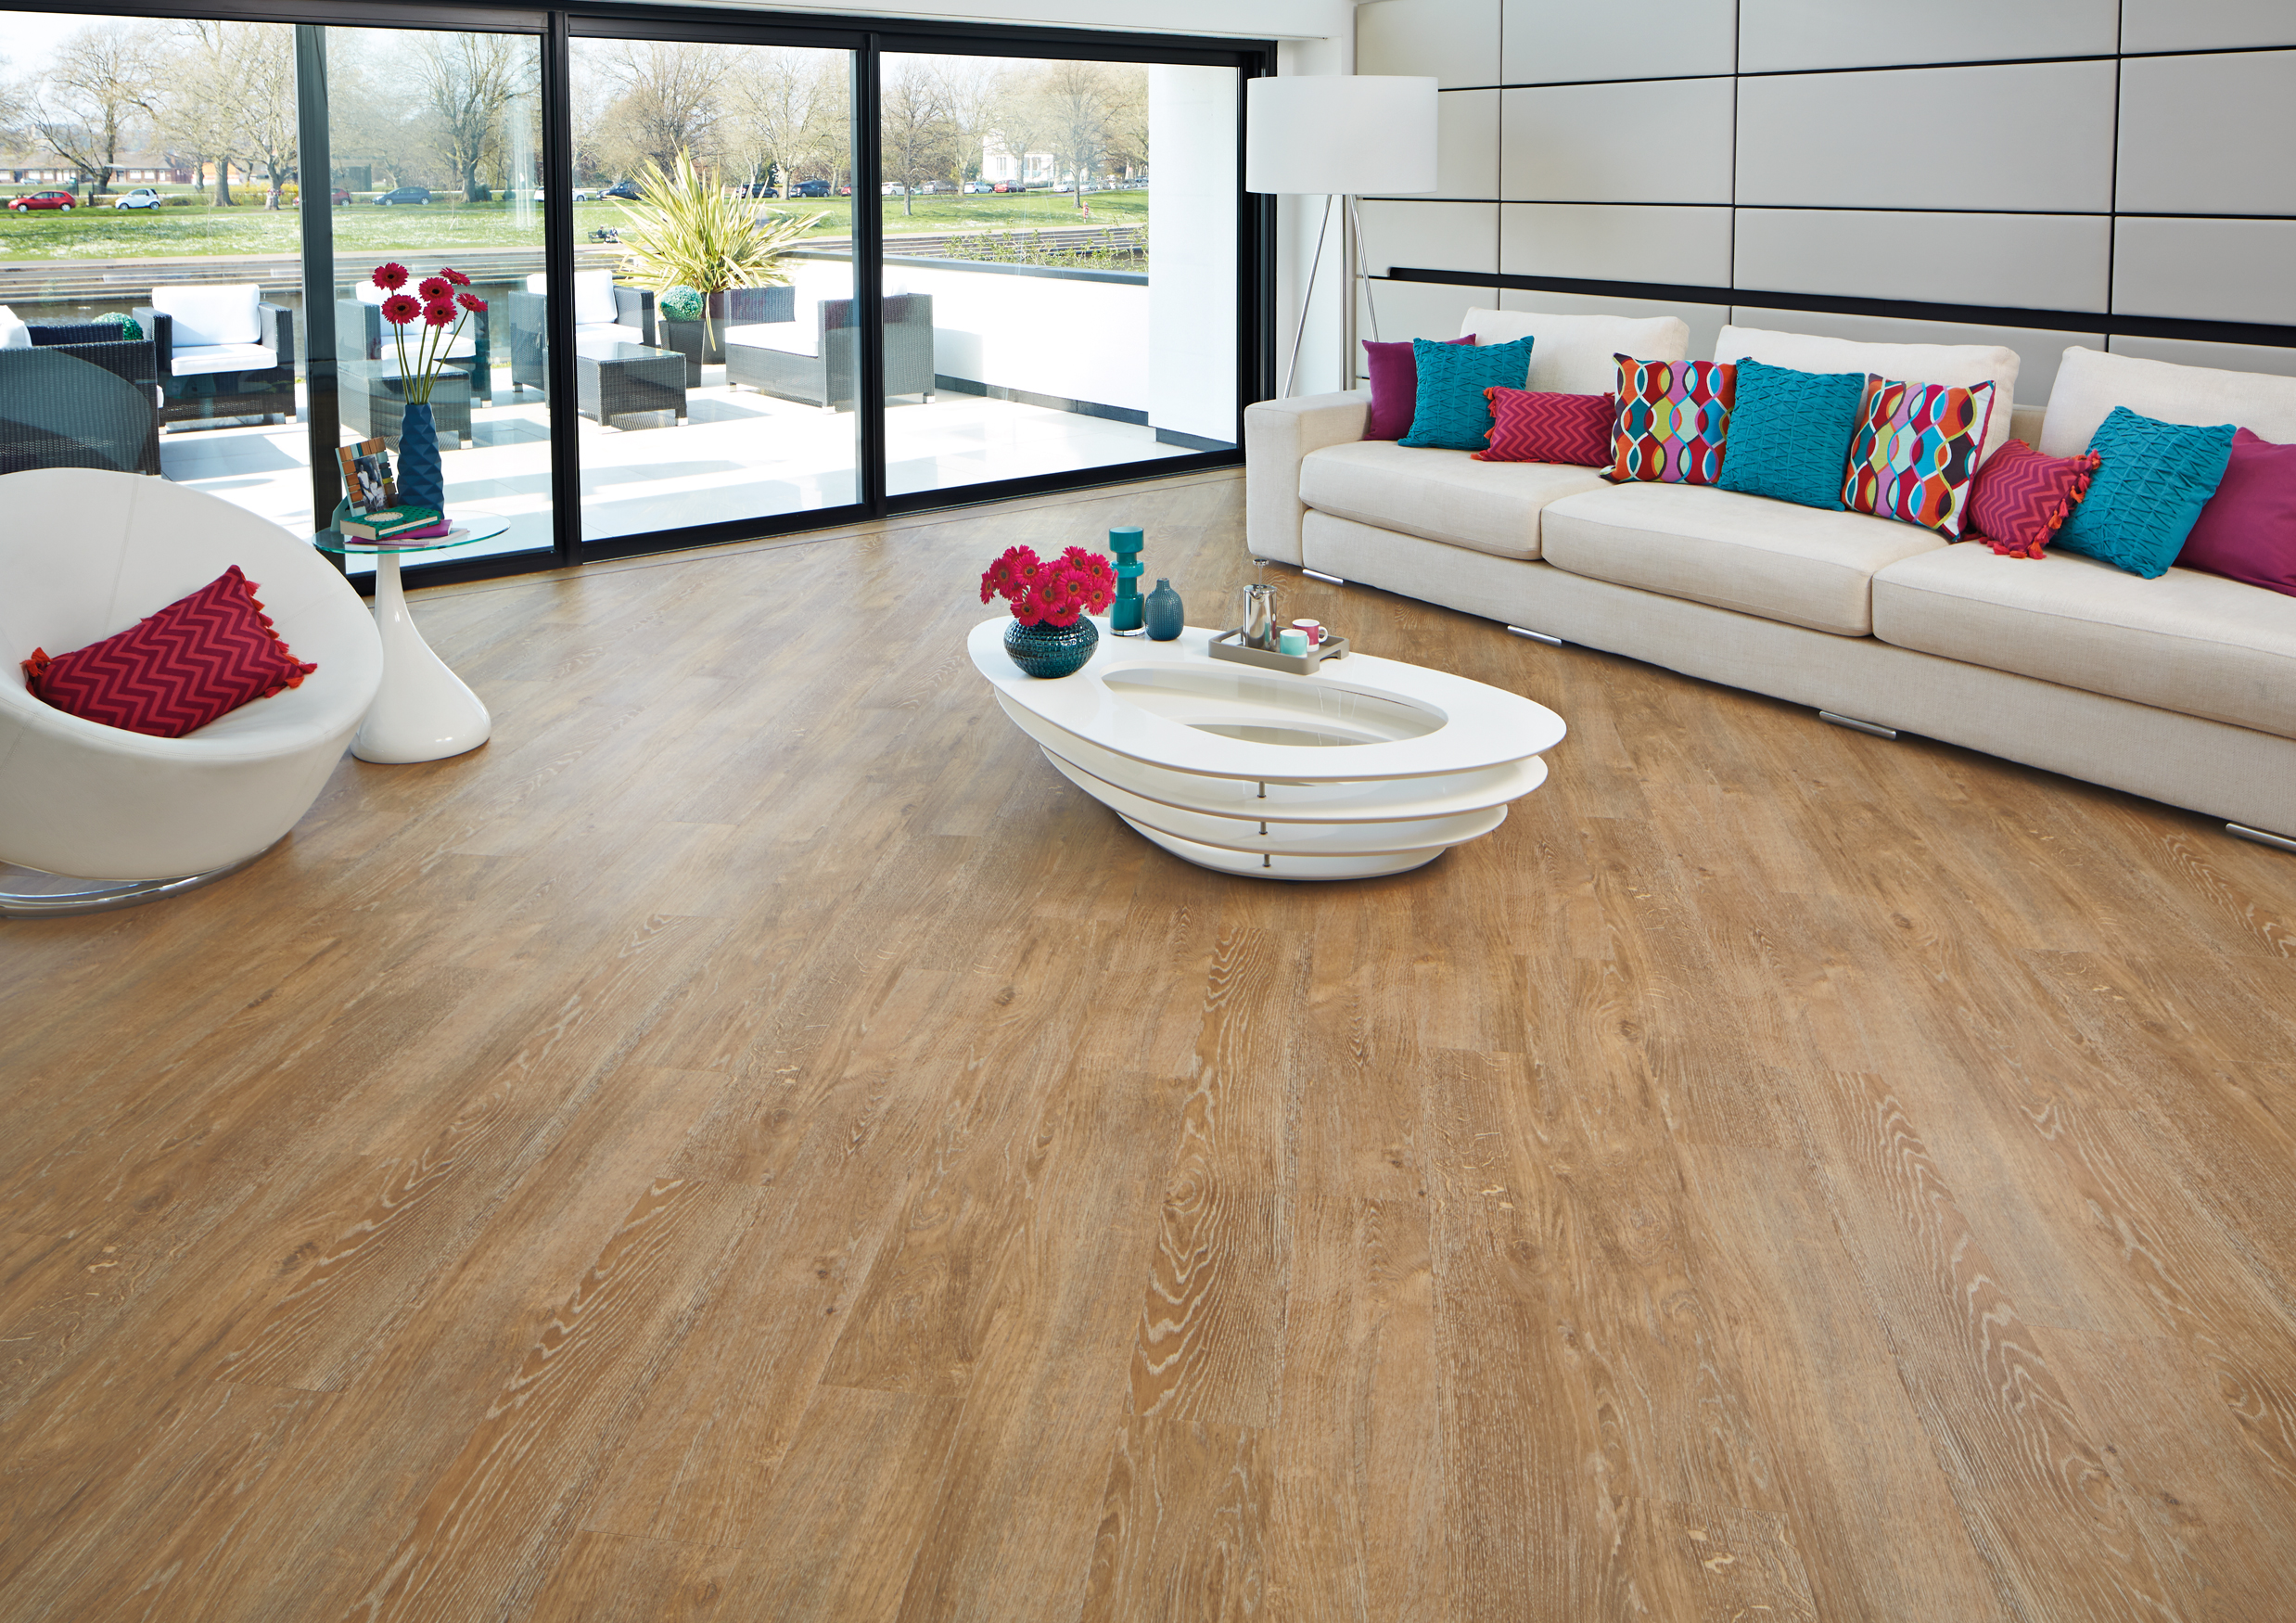 modish floor idea karndean in can vinci flooring you t the archives style offer furnishing get they providers completely luxury specialist category disprove are both tiles that da and planks